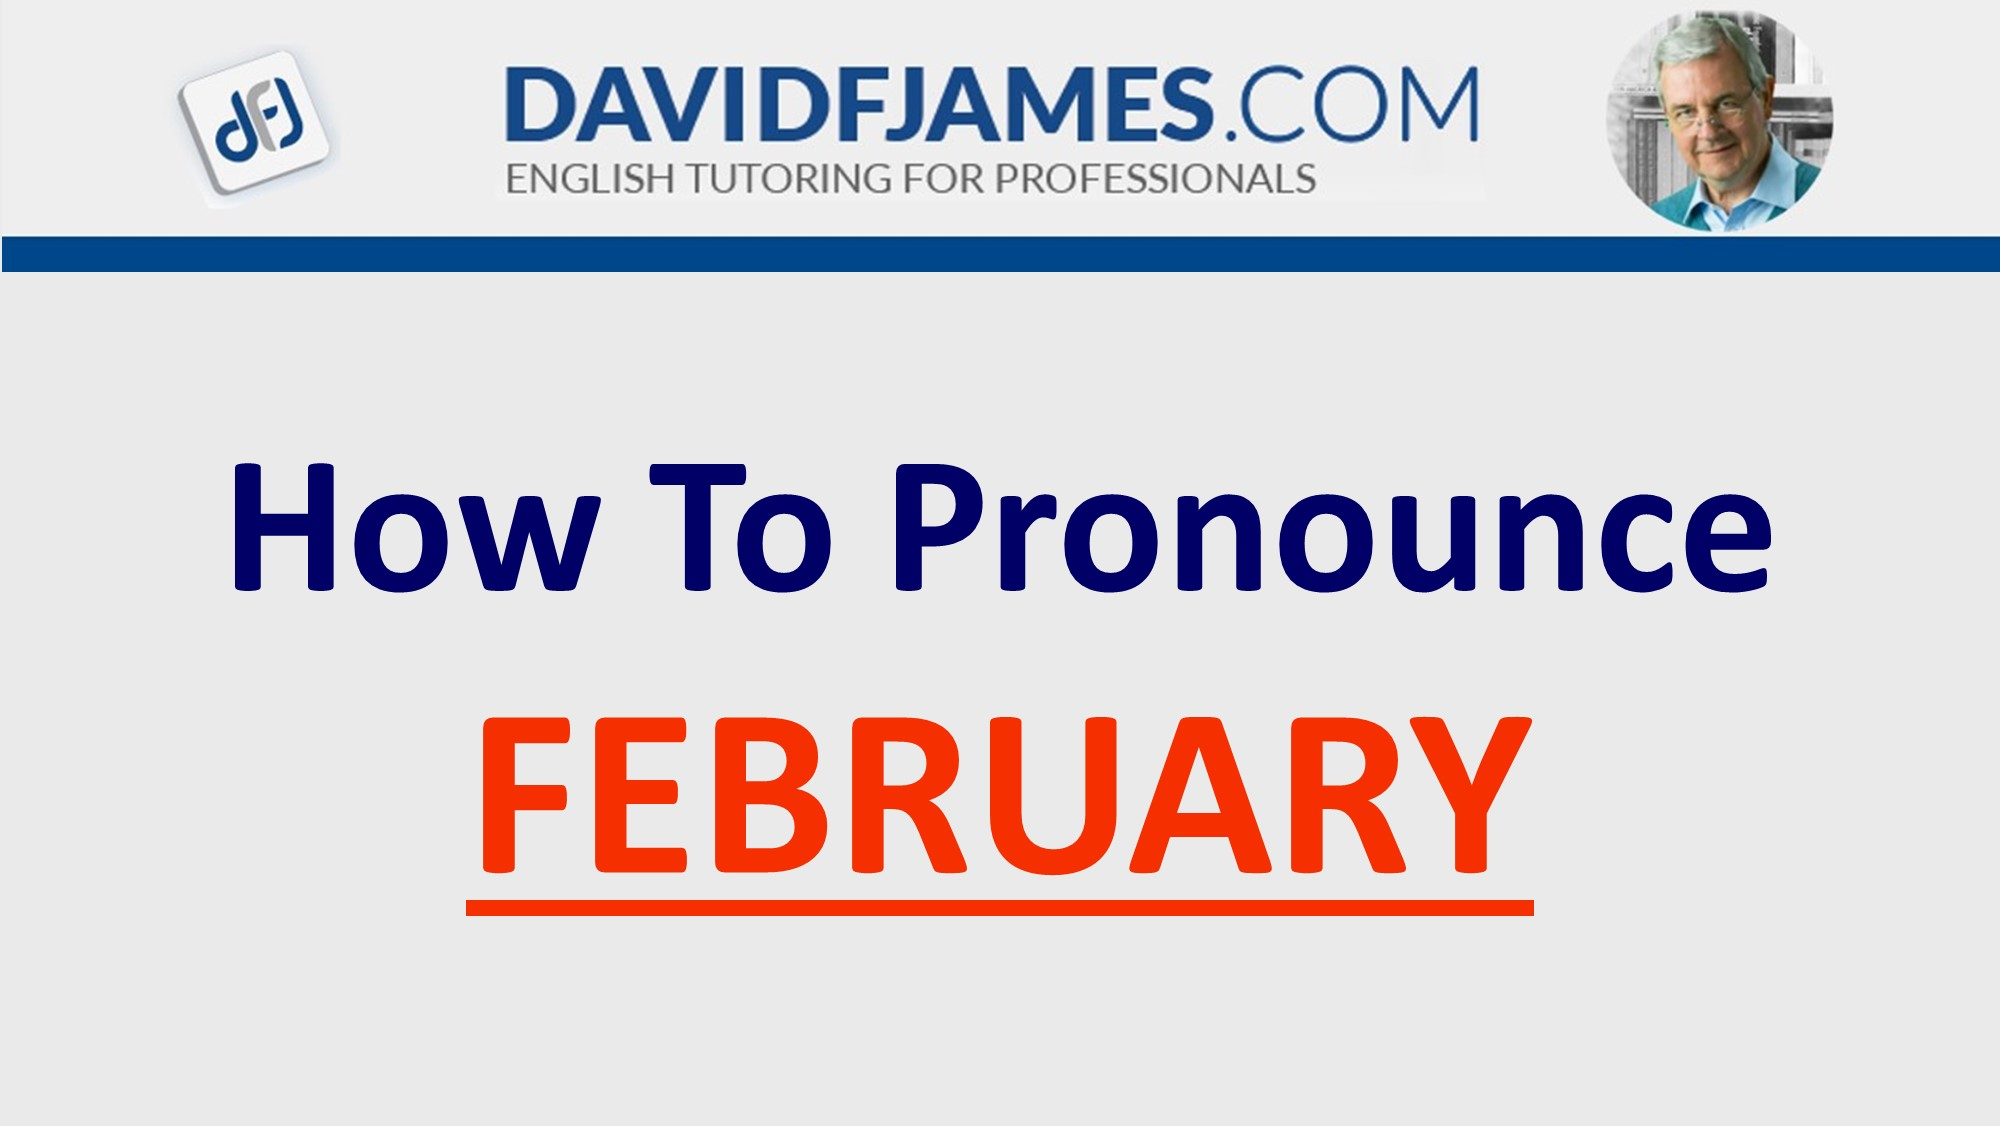 How to Pronounce FEBRUARY